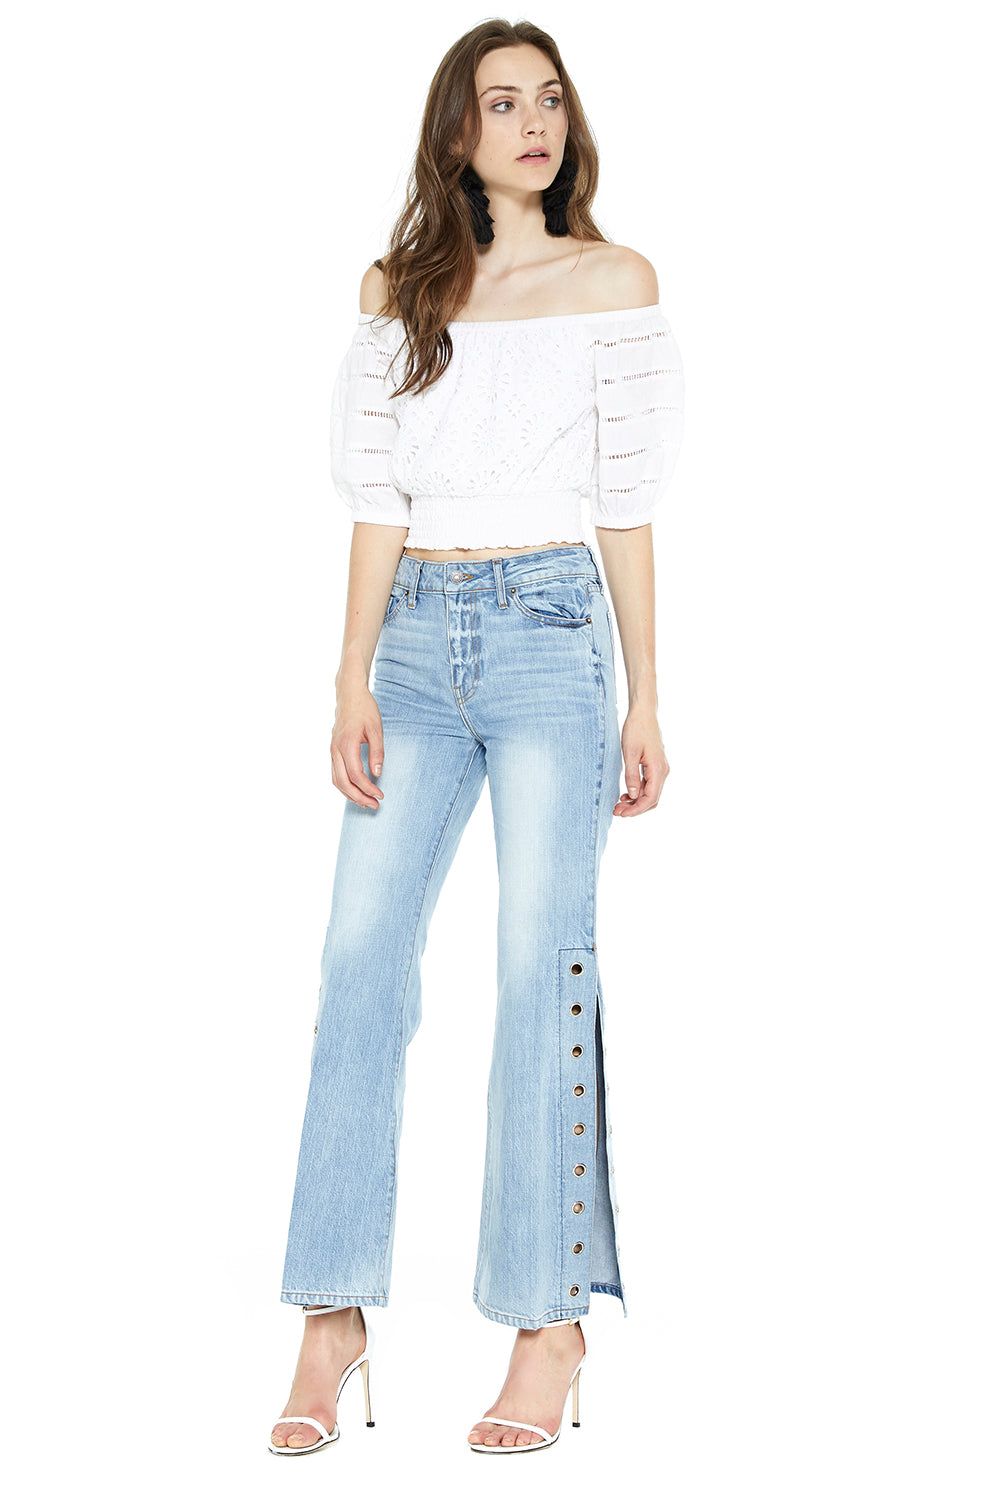 Superstar Slit Jeans - MISA Los Angeles